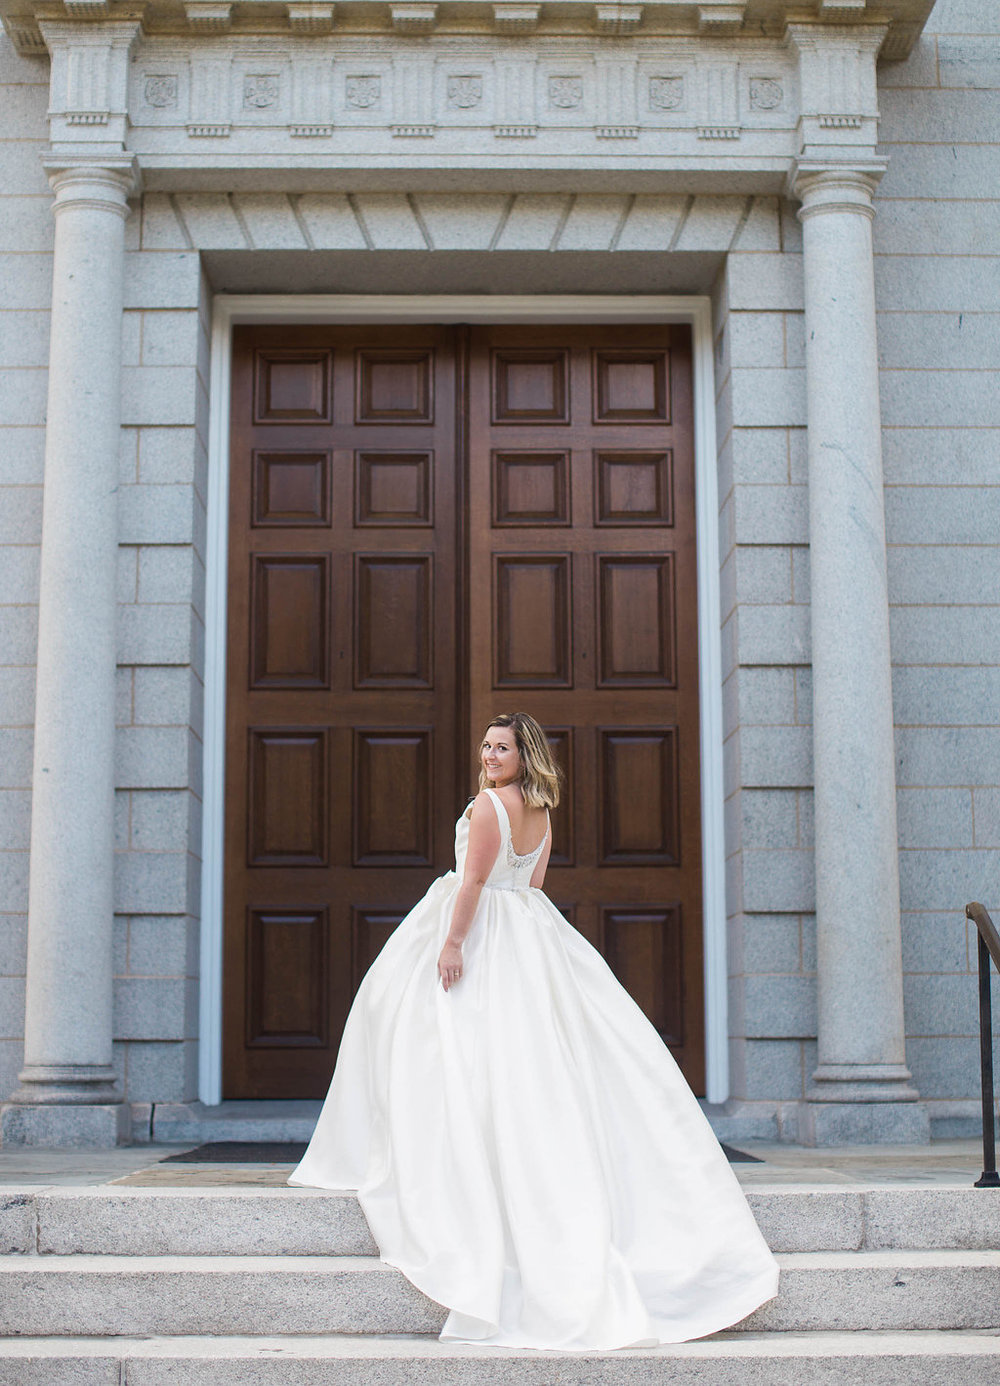 verity-maggie-sottero-ivory-and-beau-bridal-boutique-danielle-george-photography-savannah-bridal-boutique-savannah-weddings-savannah-wedding-planner-savannah-bridal-5.JPG